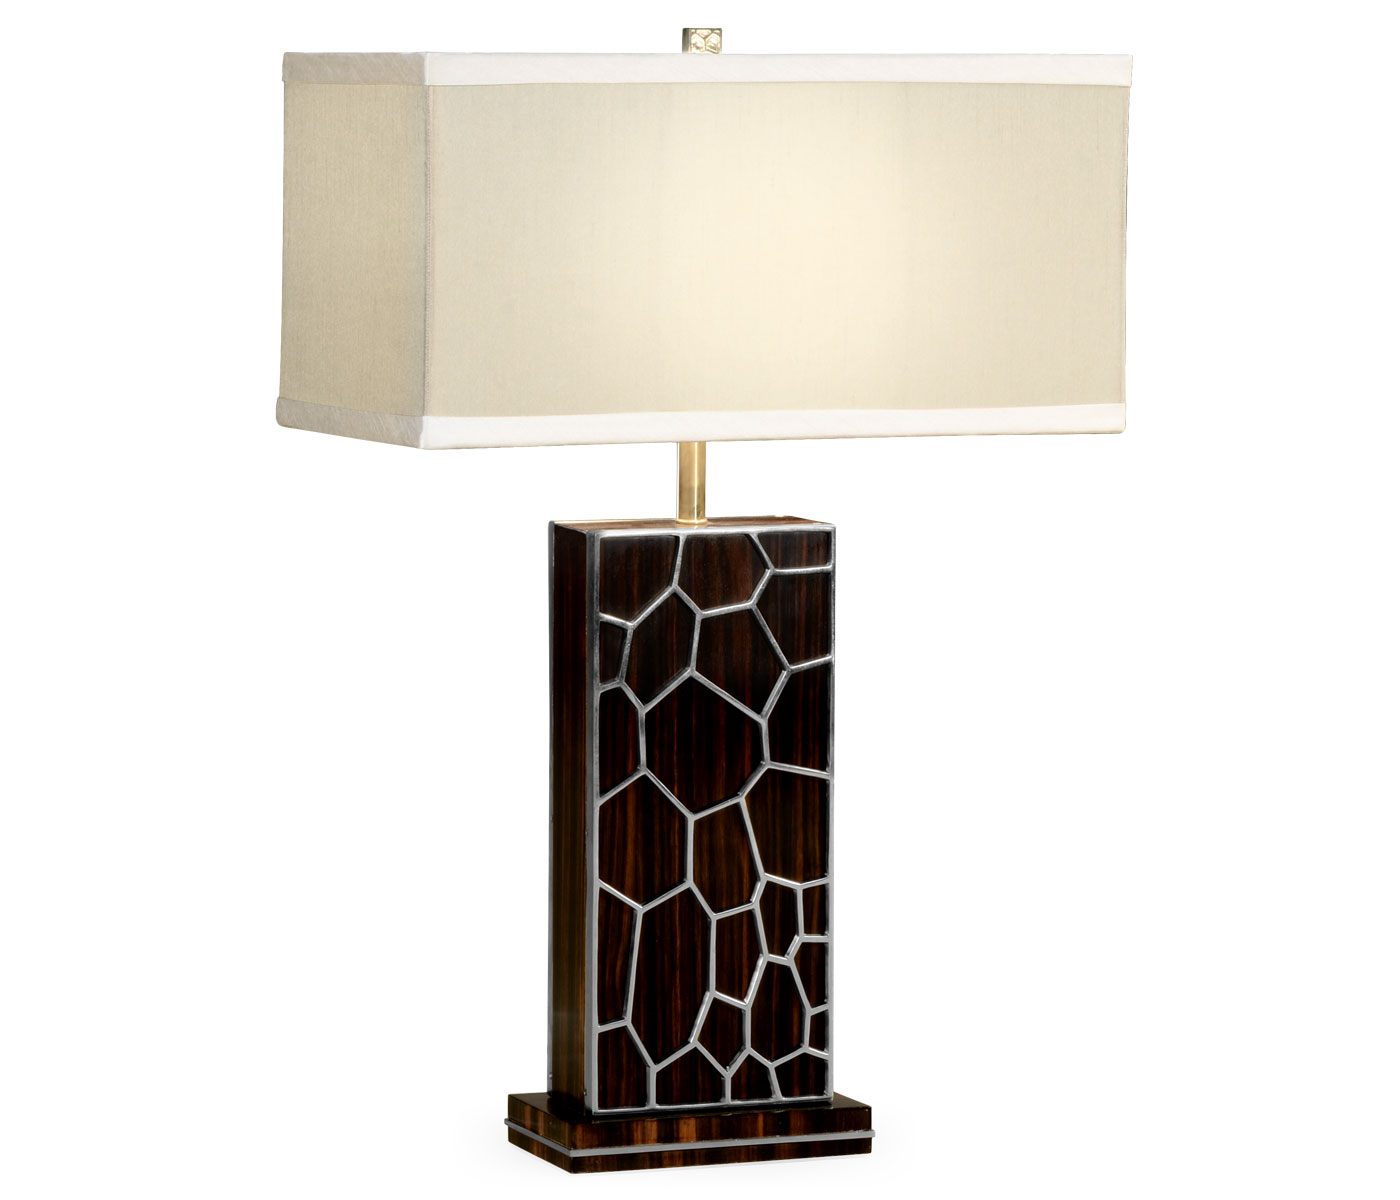 The Best And Most Luxurious Lamps For Your Home